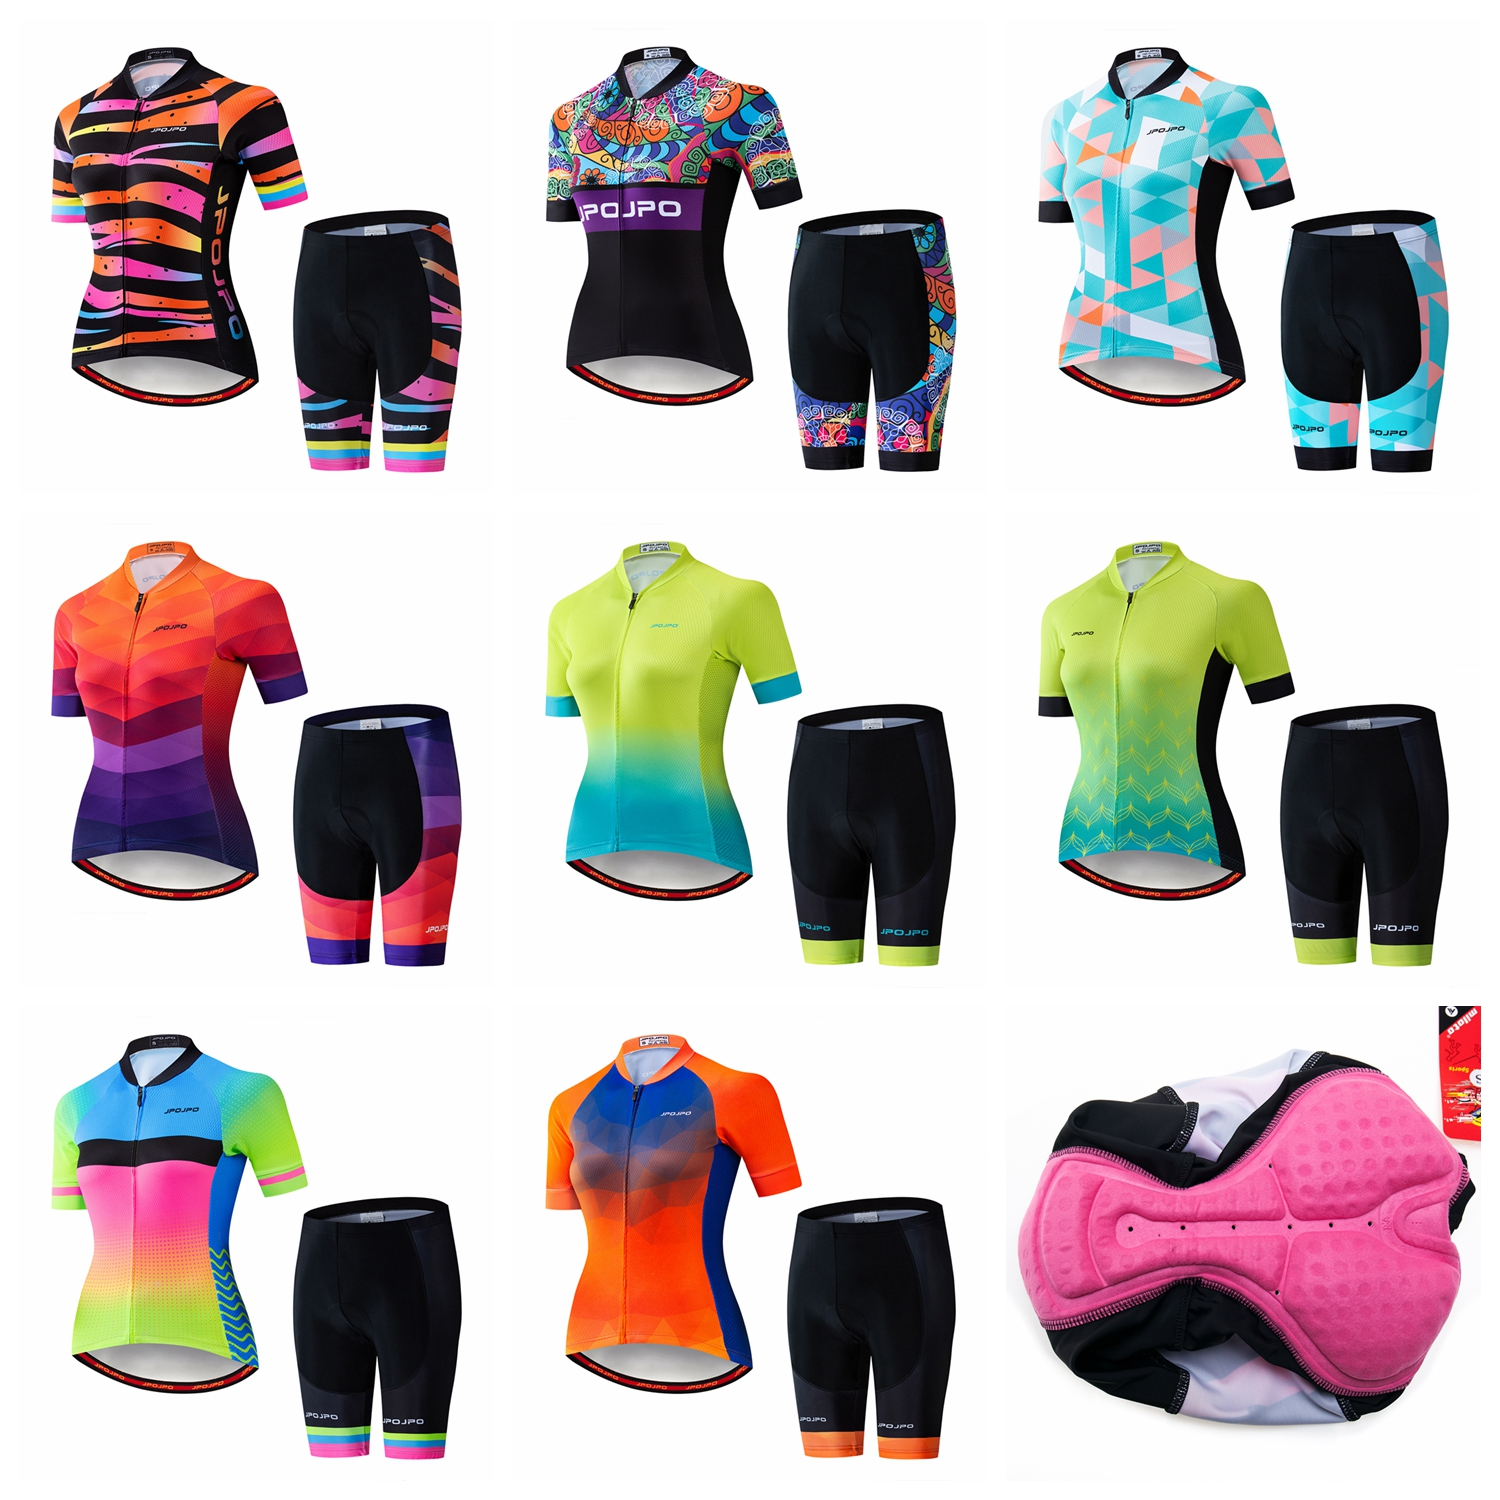 JPOJPO Cycling Jersey Sets Women Mtb Racing Bike MTB Cycling Shirt Clothing Ropa Ciclismo Summer Short Sleeve Bike Jersey Sets